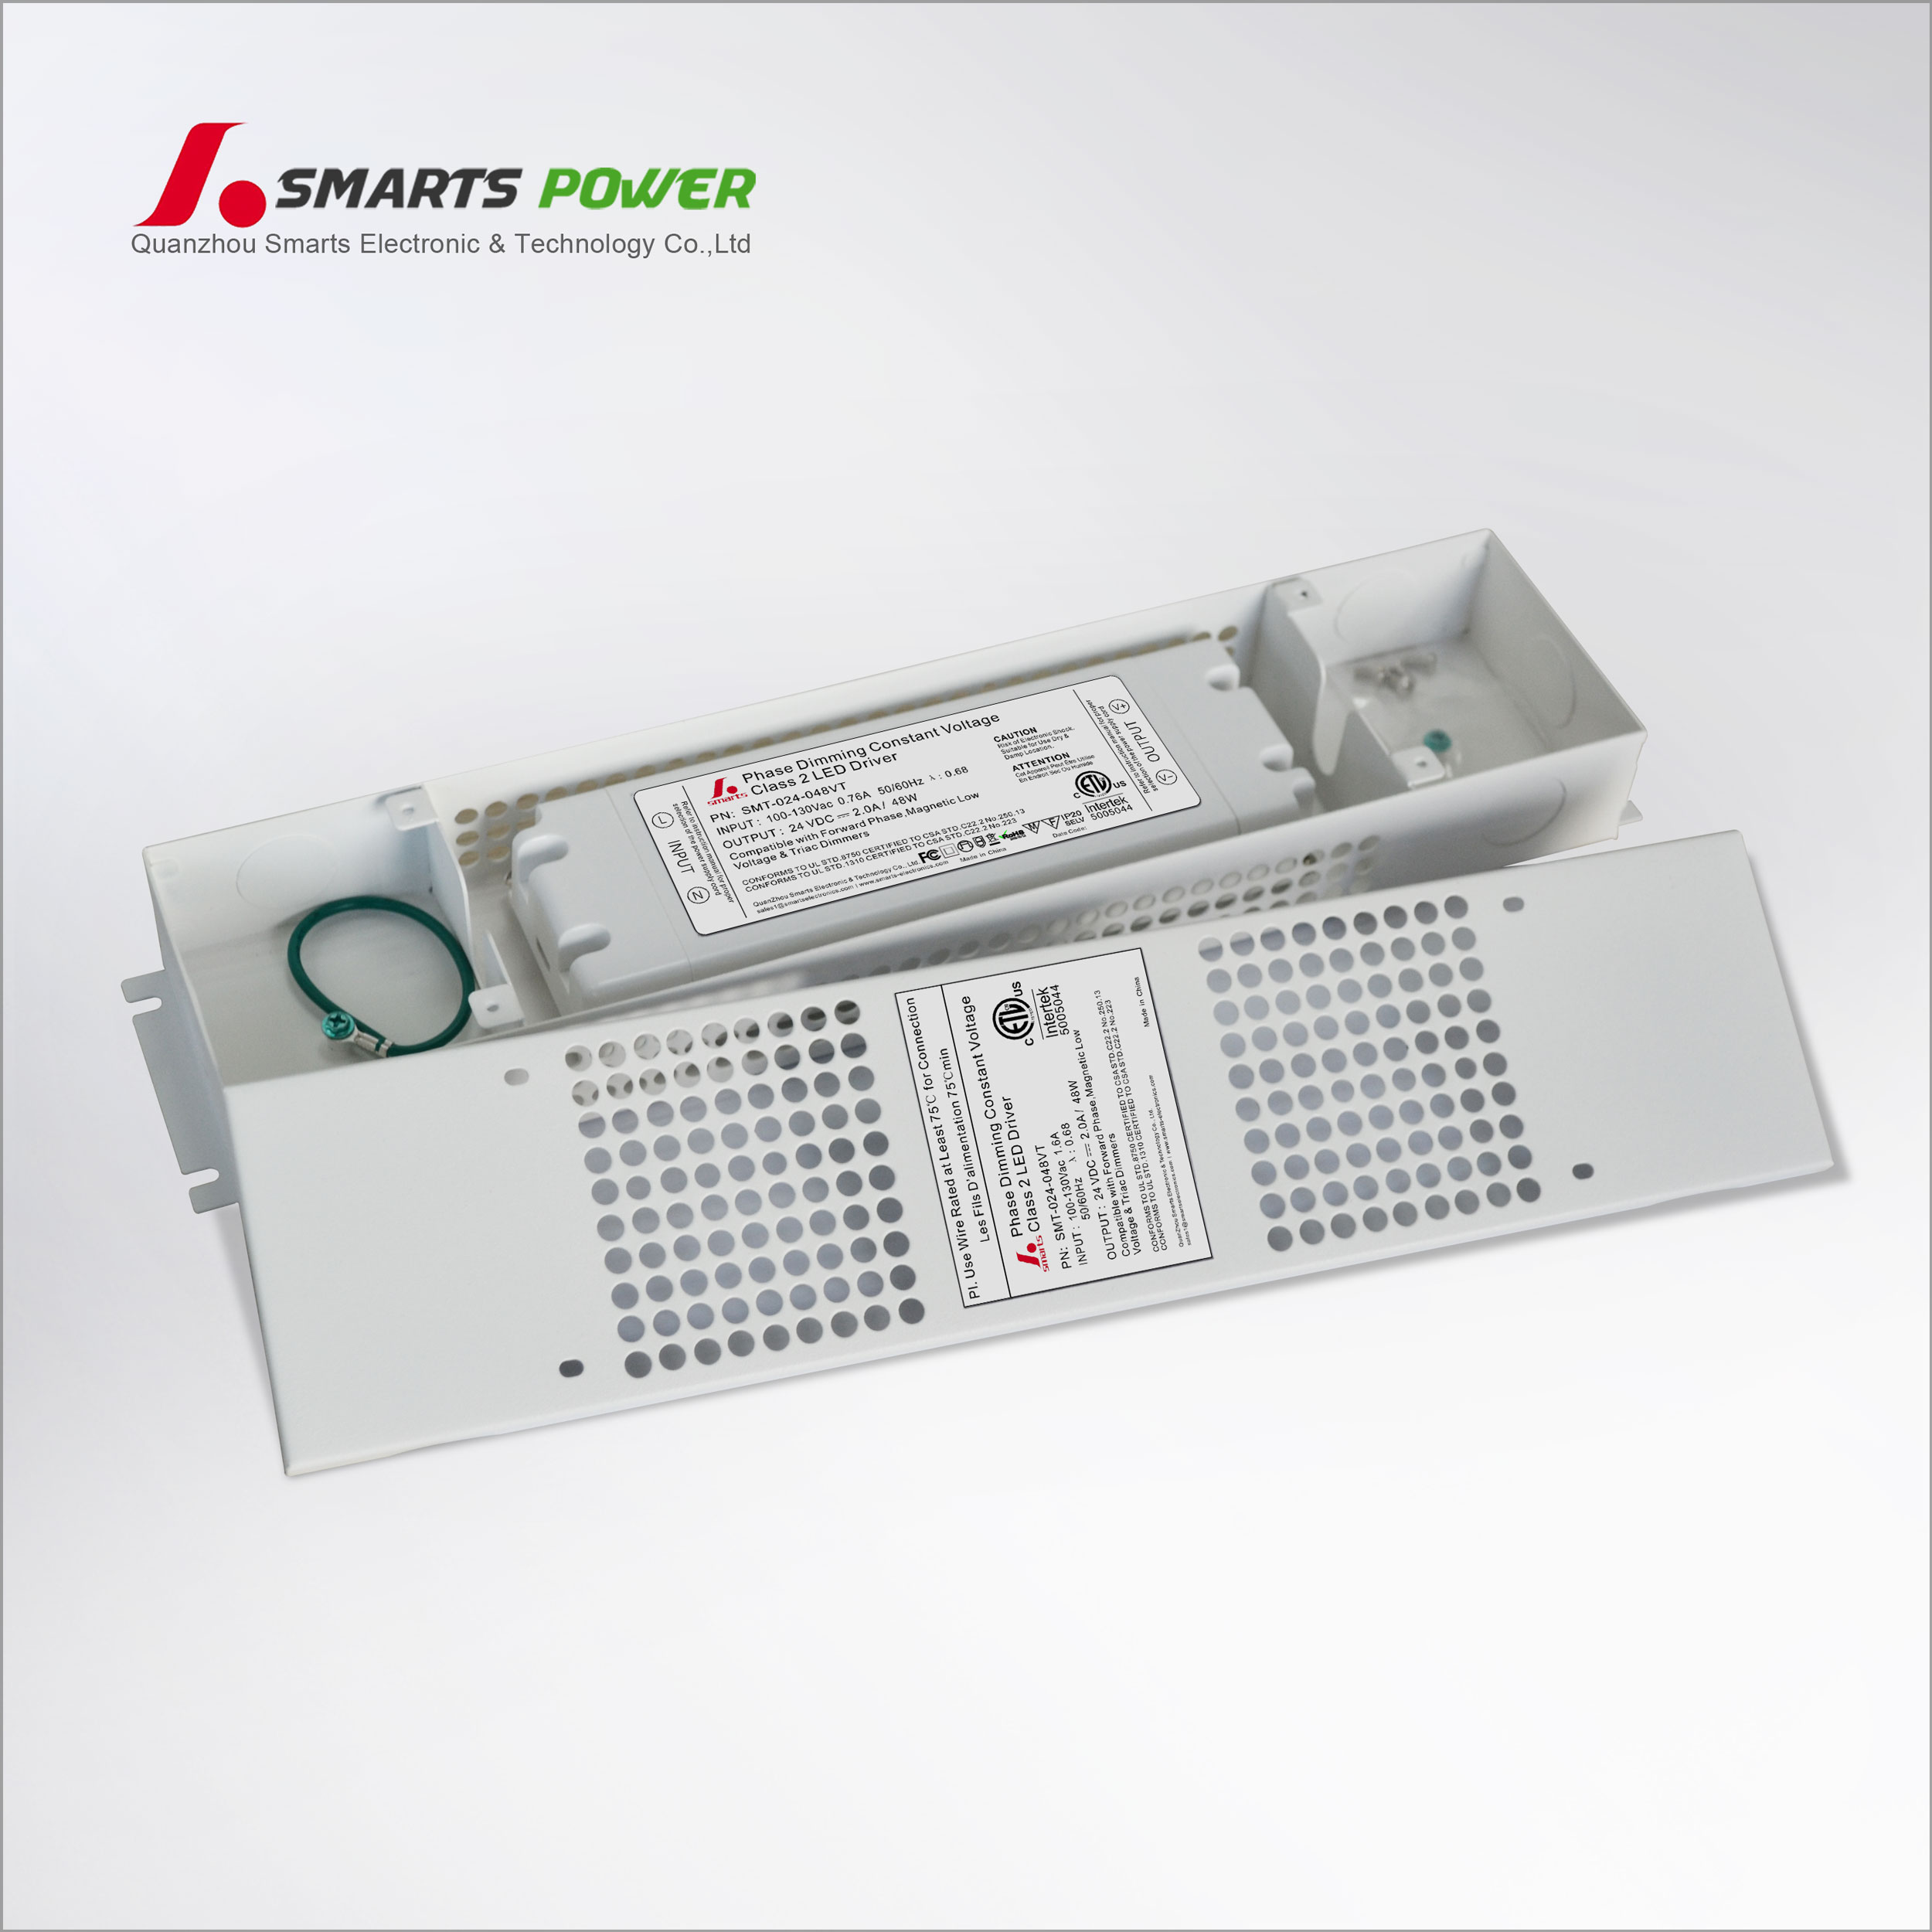 Etl Listed Class 2 Dimmable Triac Led Driverled Sign Driver Power Drivers 0 10v Dimming Wiring Diagram On 3 Way Dimmer 24v 48w